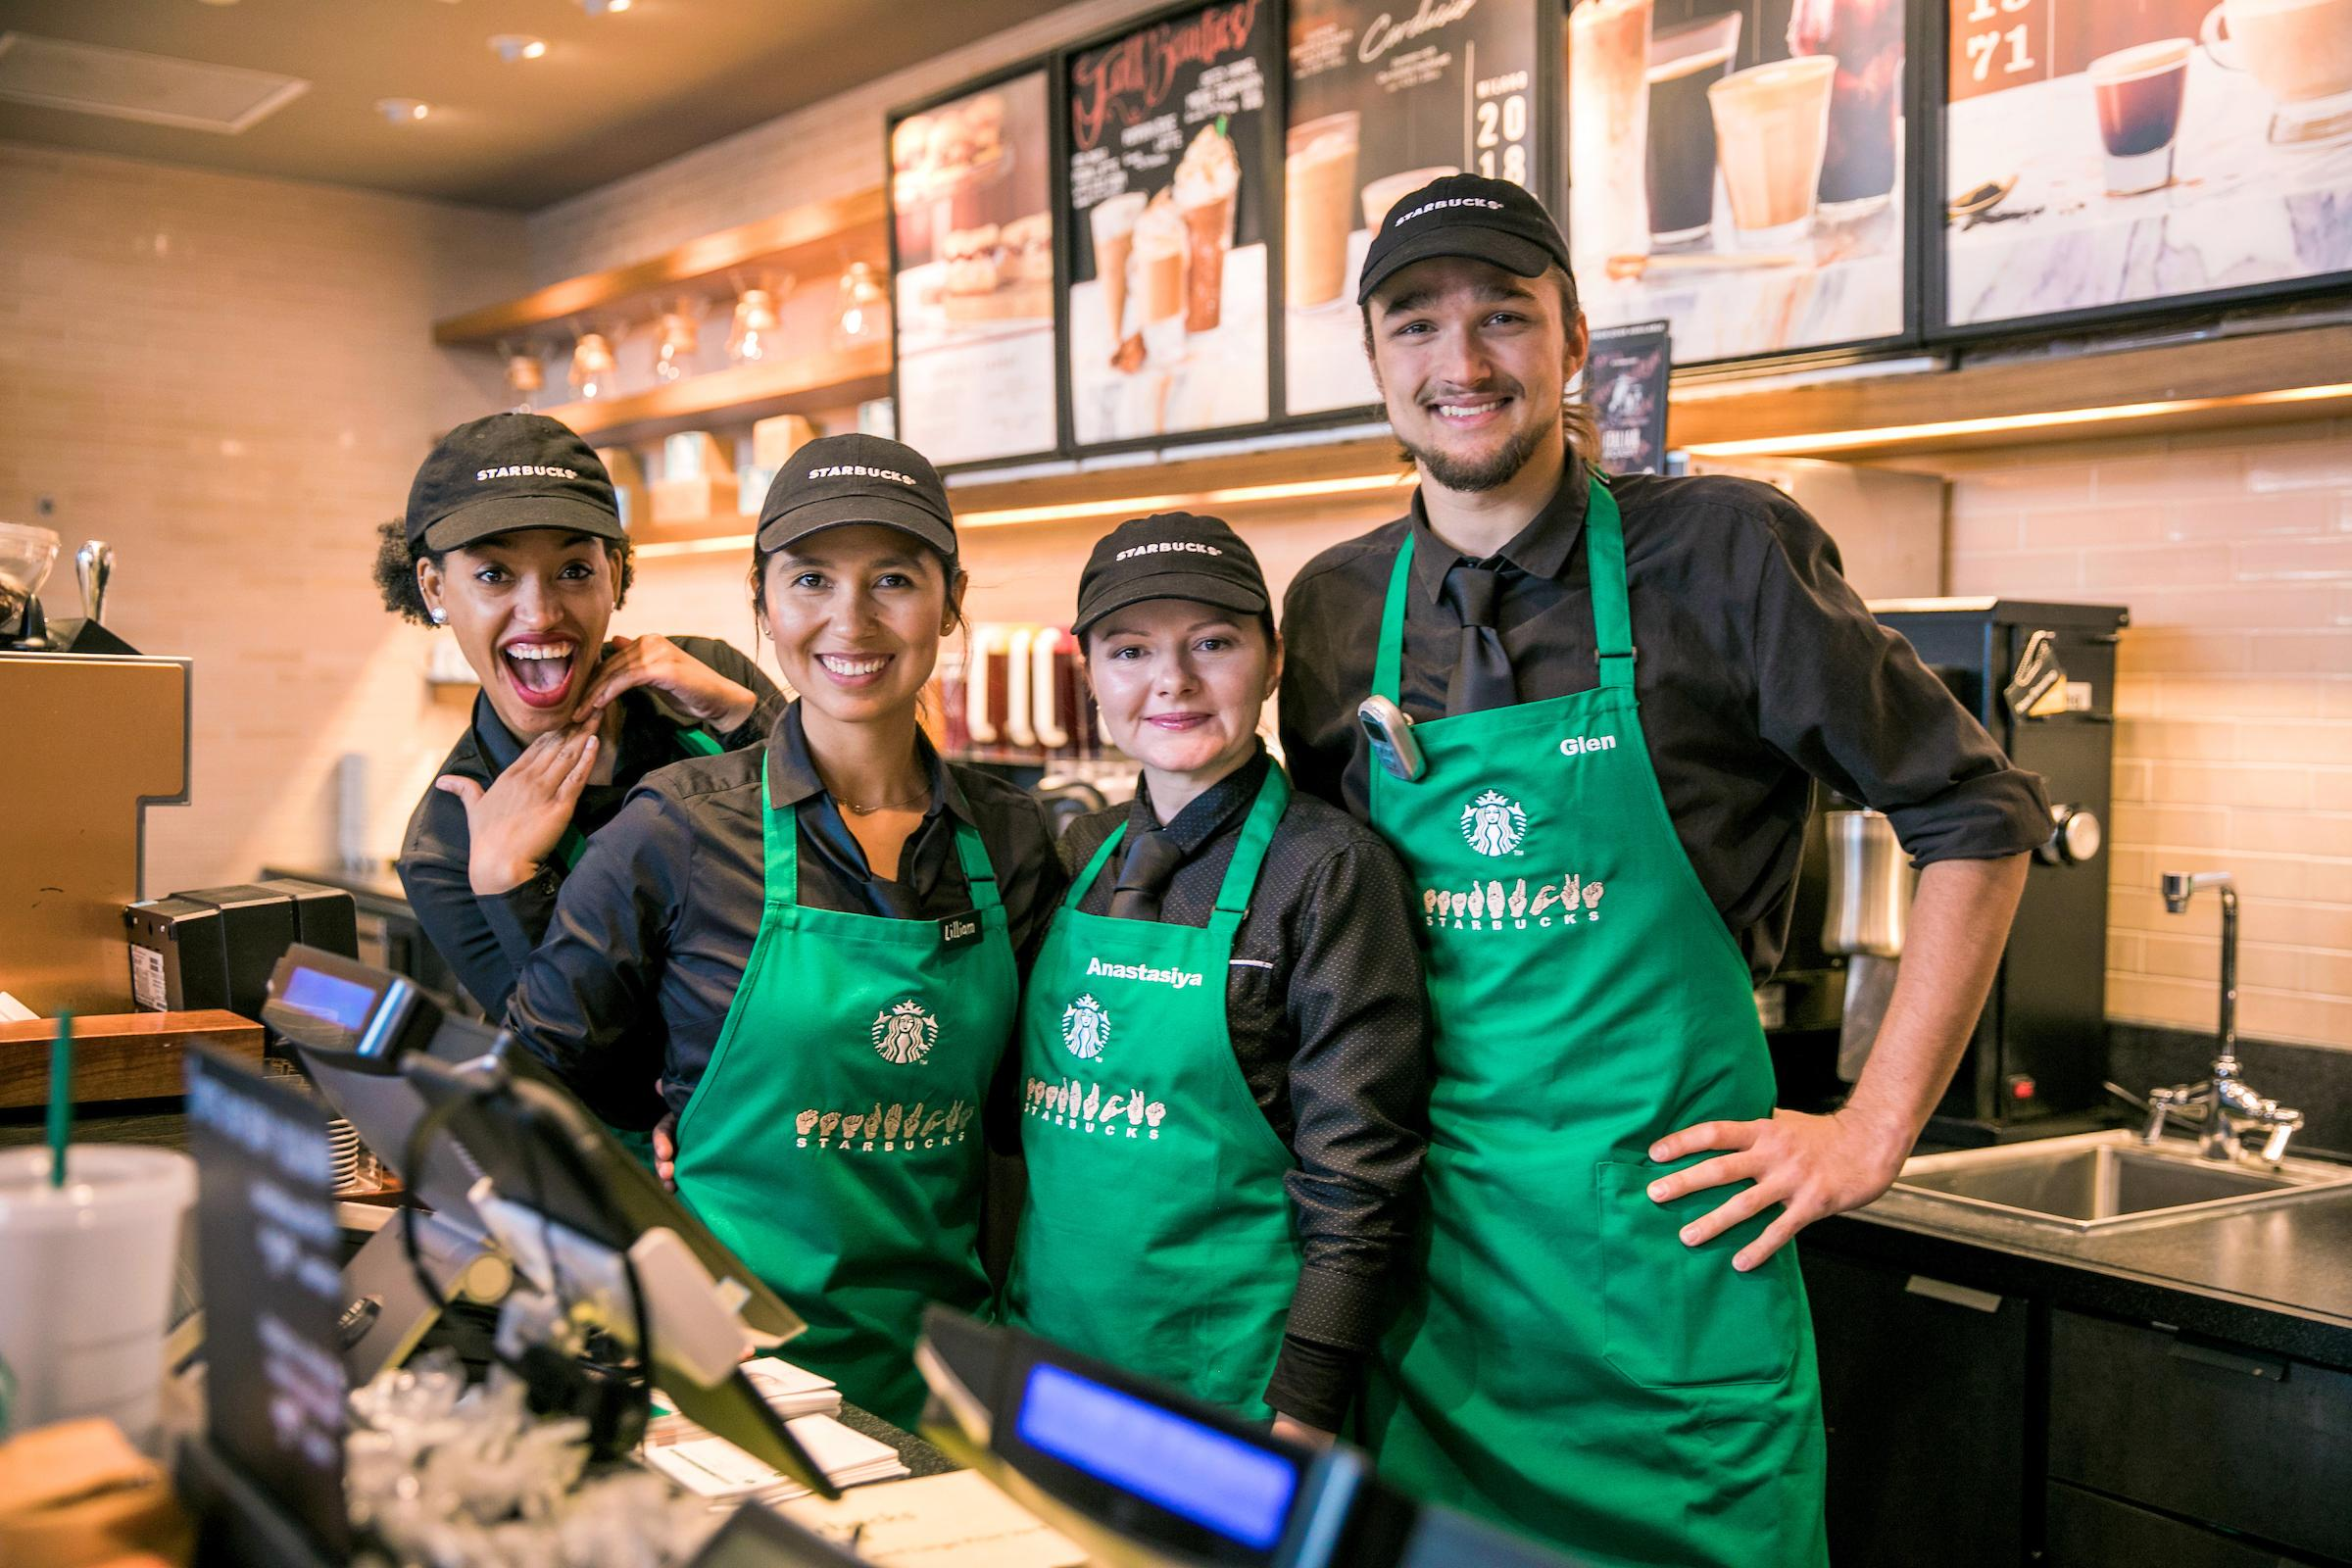 Everyone at the store is Deaf, hard of hearing or able to speak sign language.{ }{ }(Image: Joshua Trujillo, Starbucks)